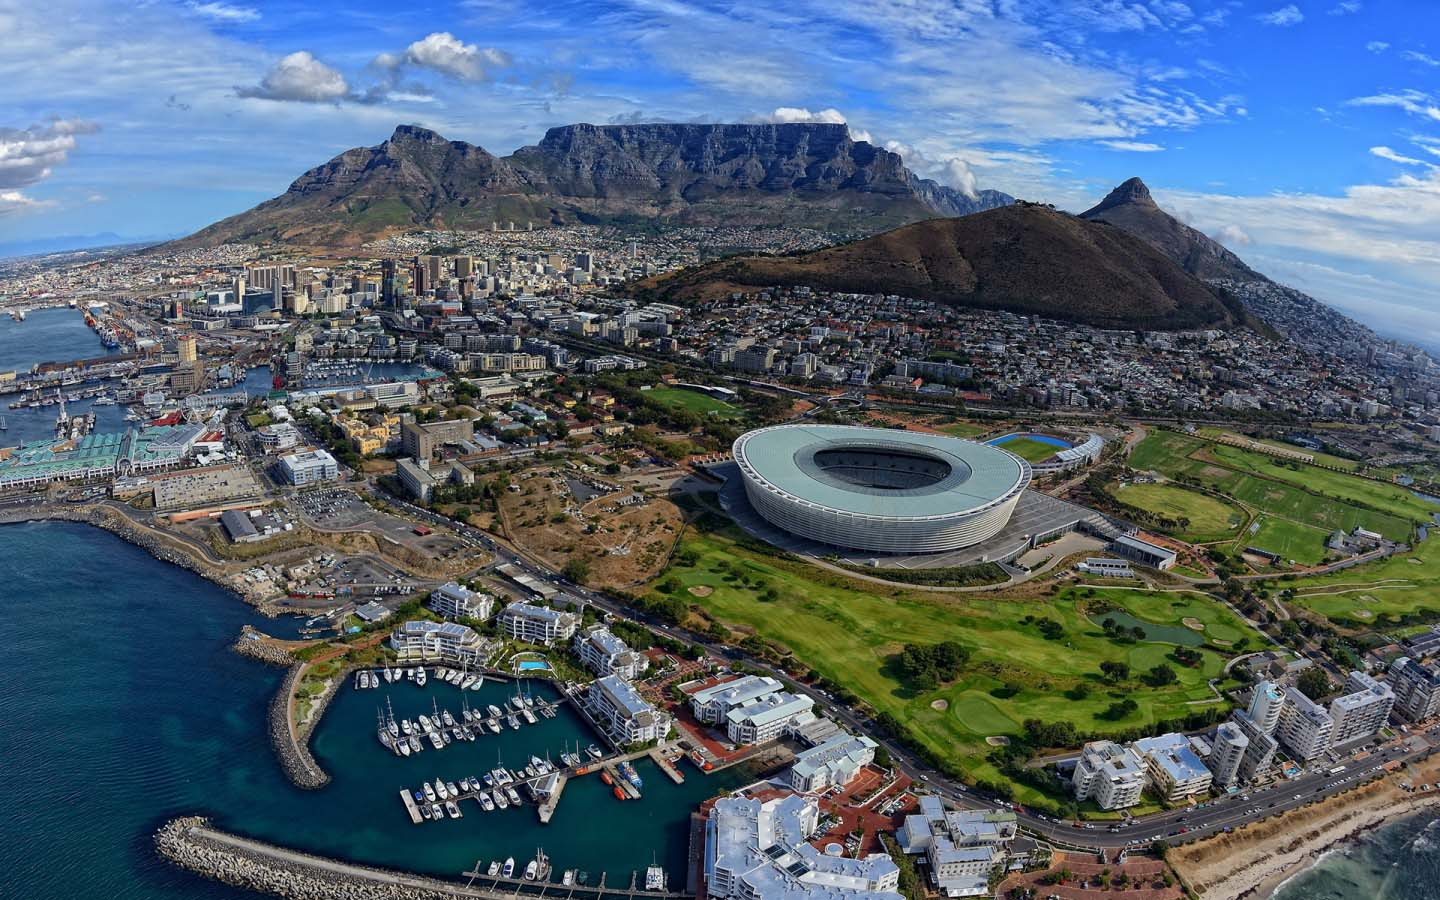 Cape Town Aerial View - Around About Cars